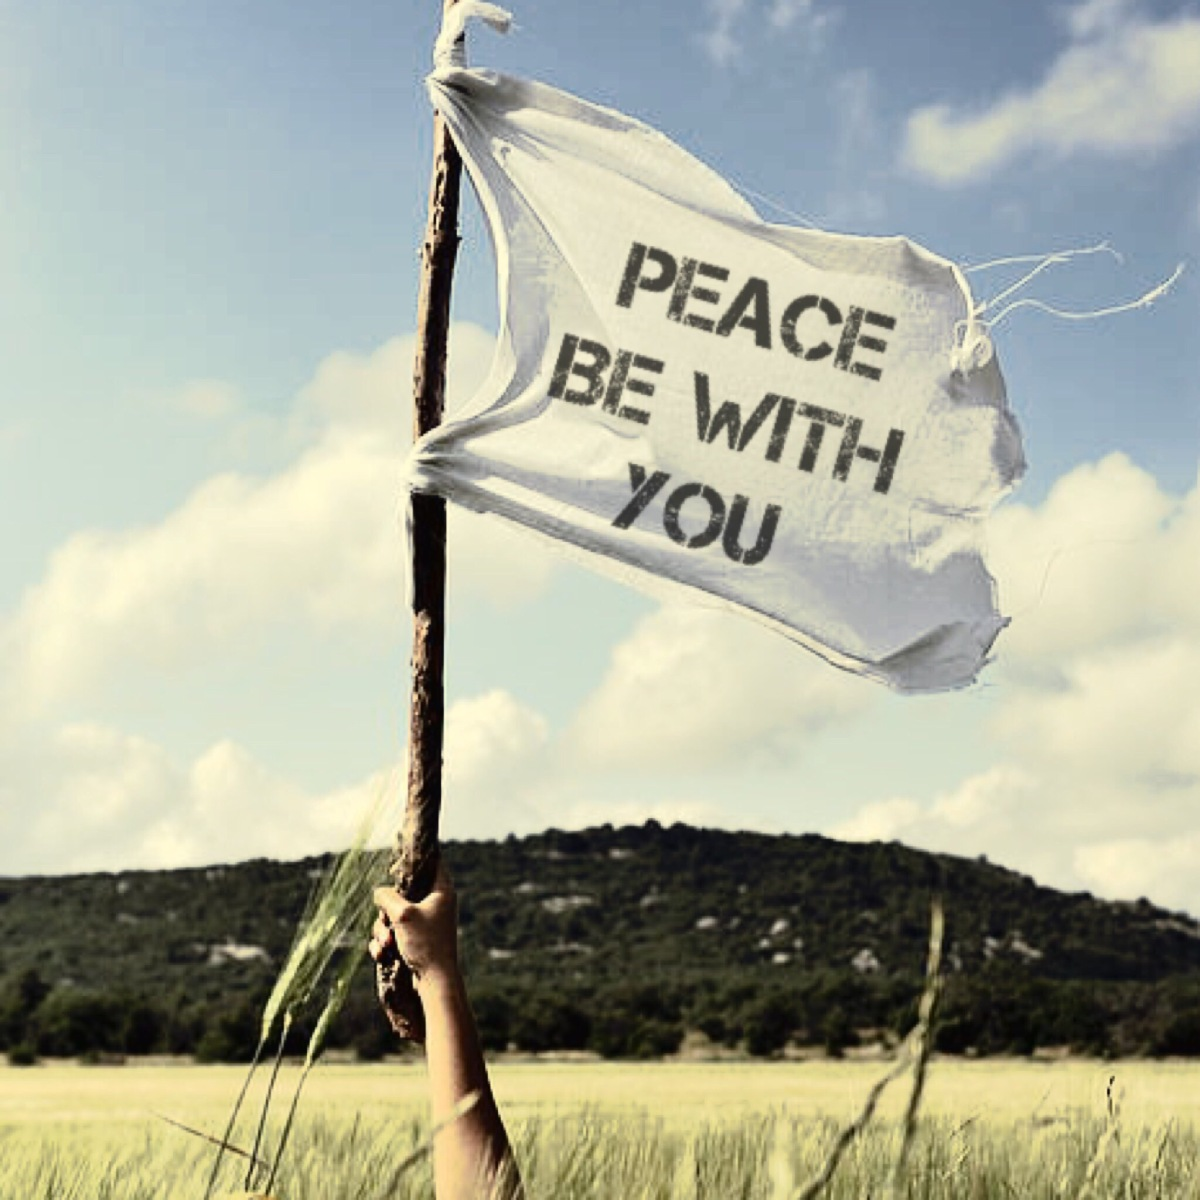 Power & Control; How to peacefully disengage.